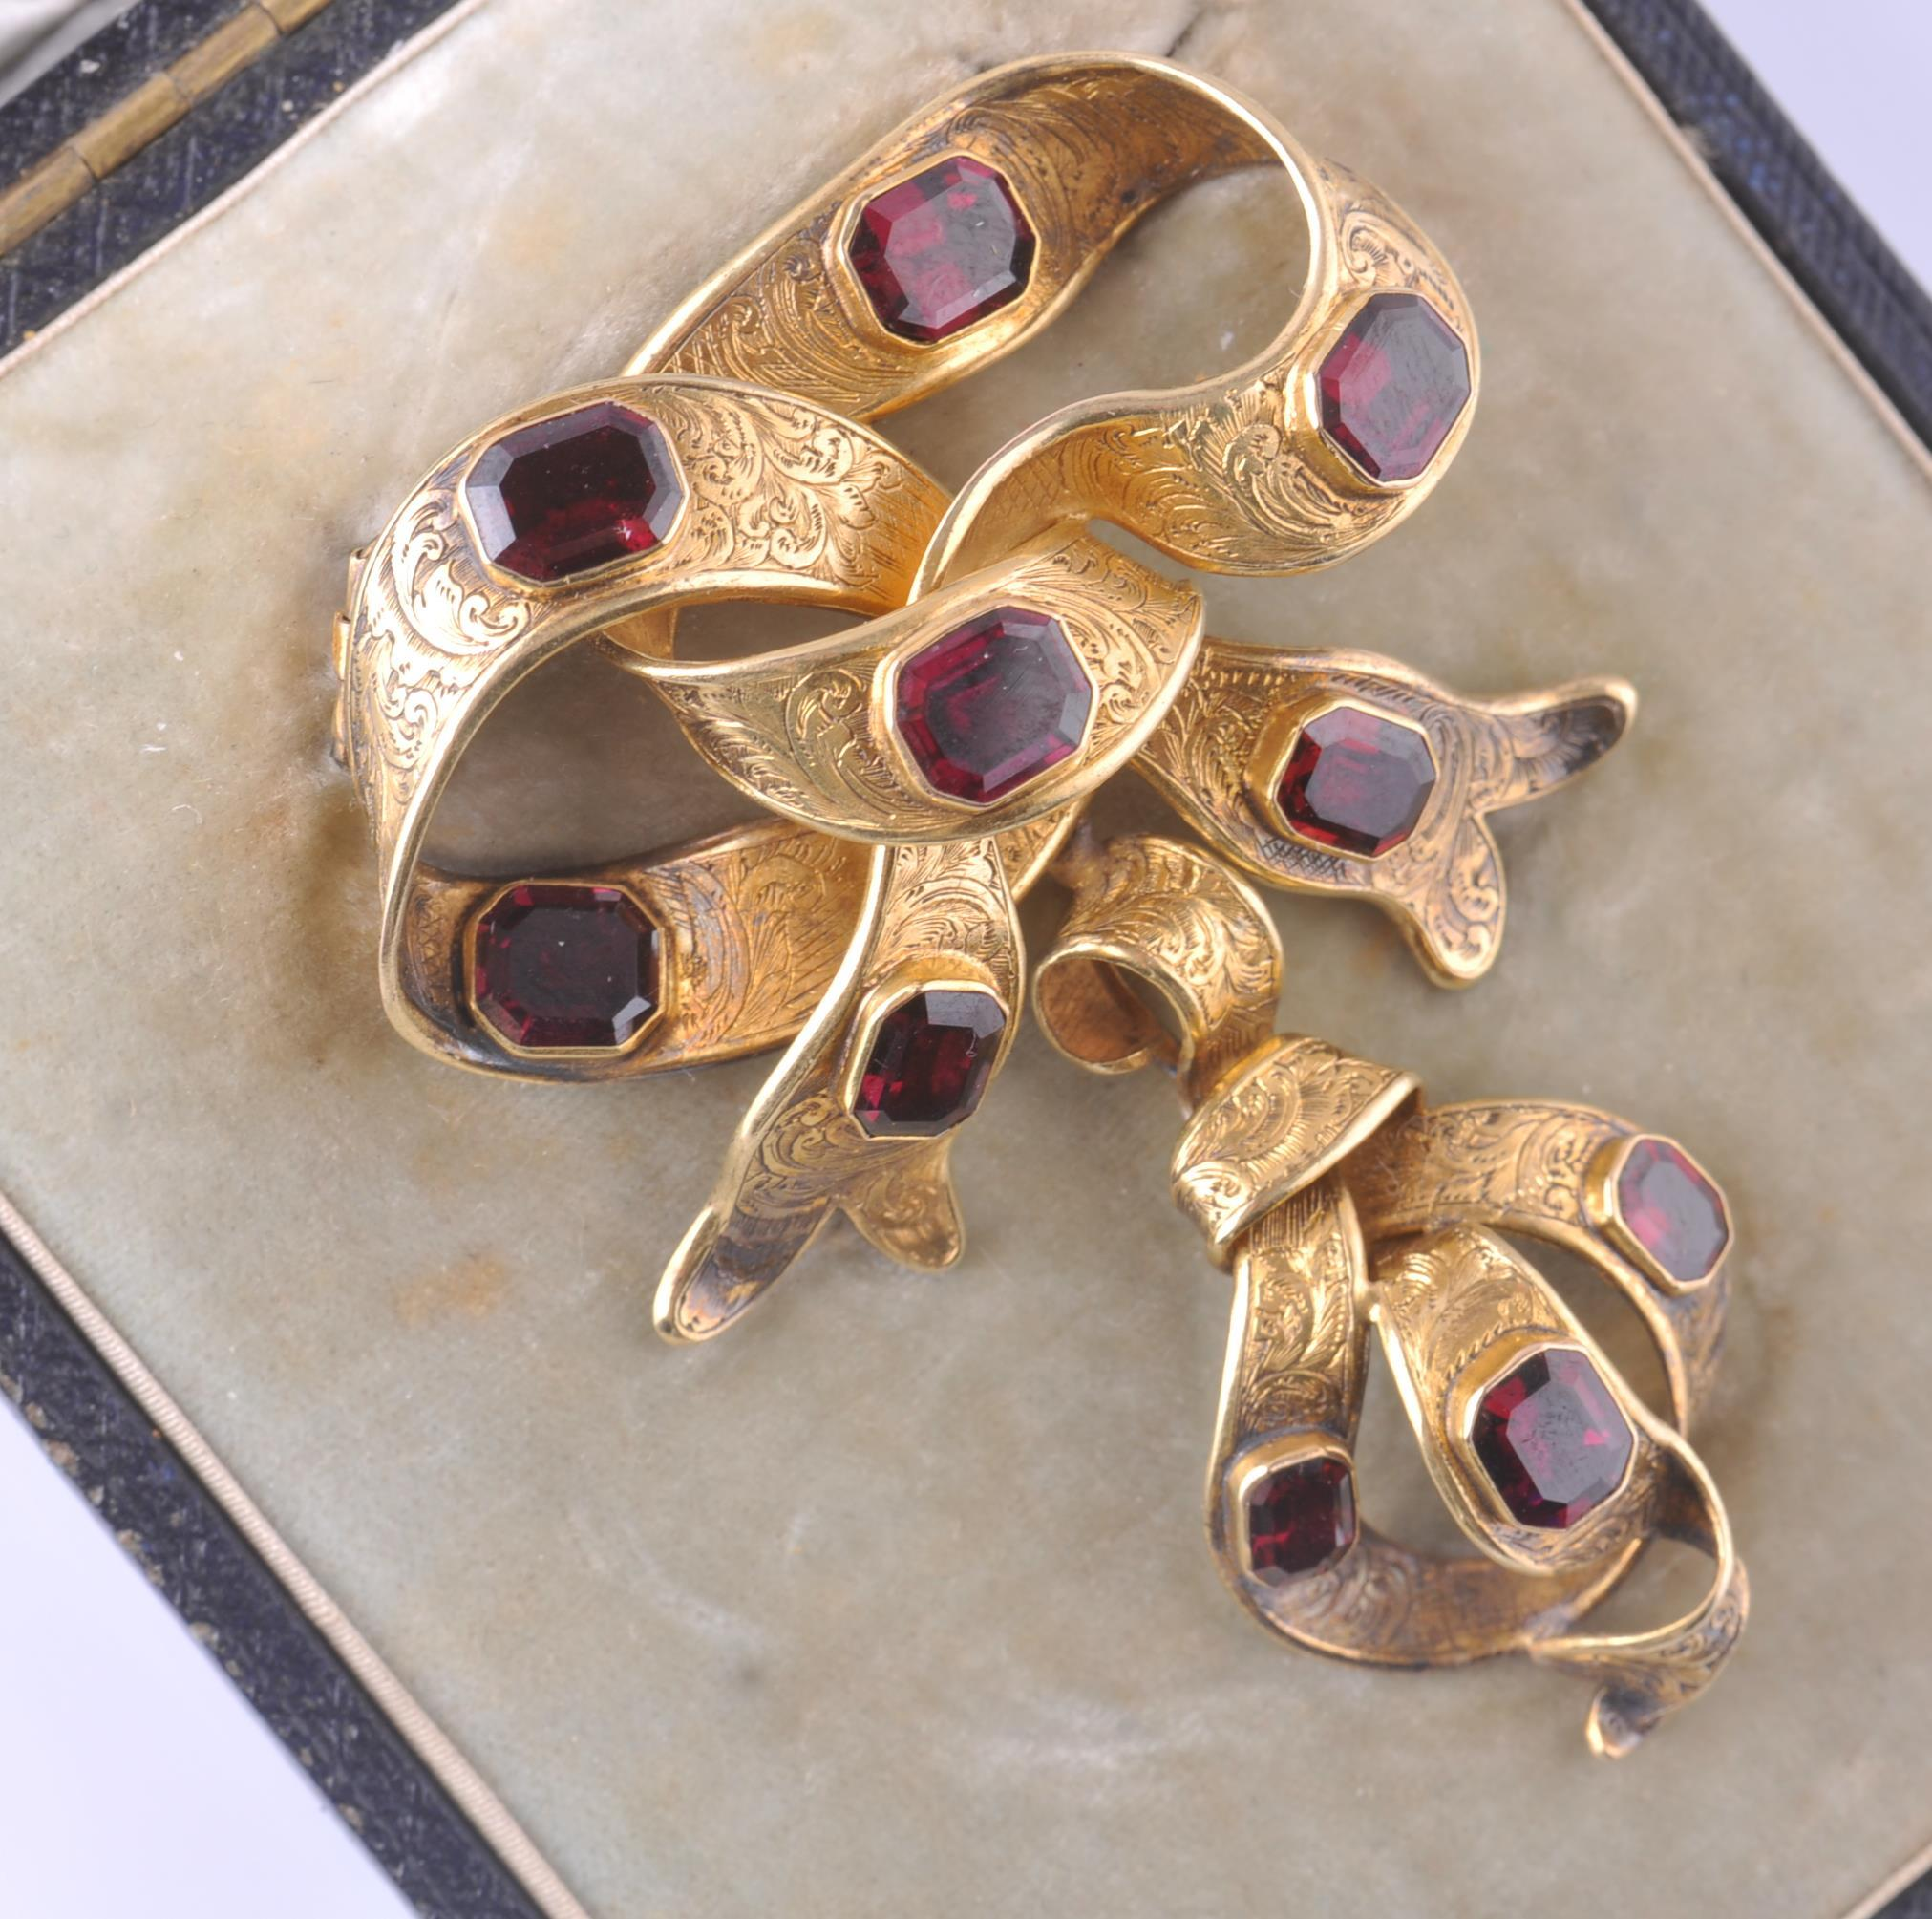 Lot 141 - A CASED 19TH CENTURY GOLD & GARNET BROOCH